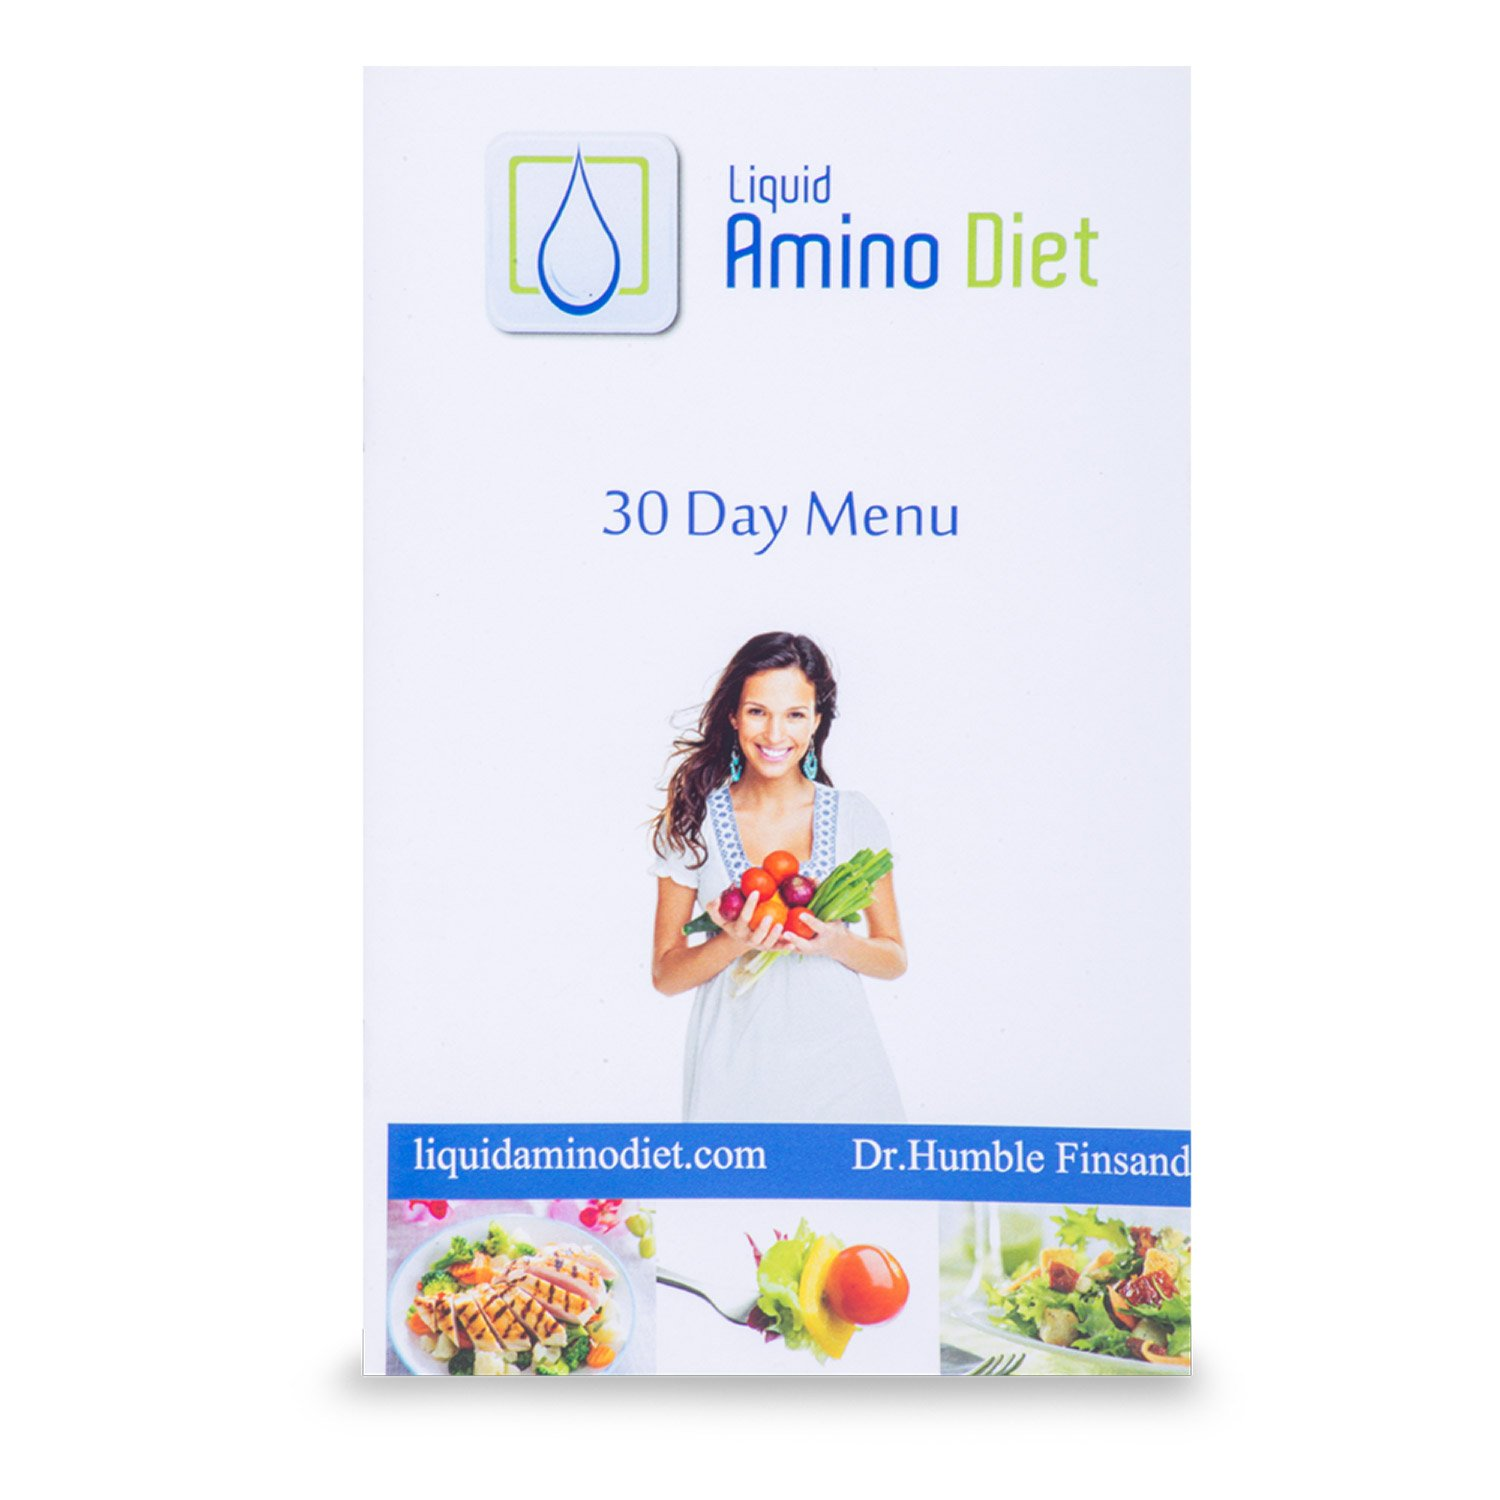 Amino Diet 90 day weight loss program - Lose 50+ pounds (Regular Guidebook)